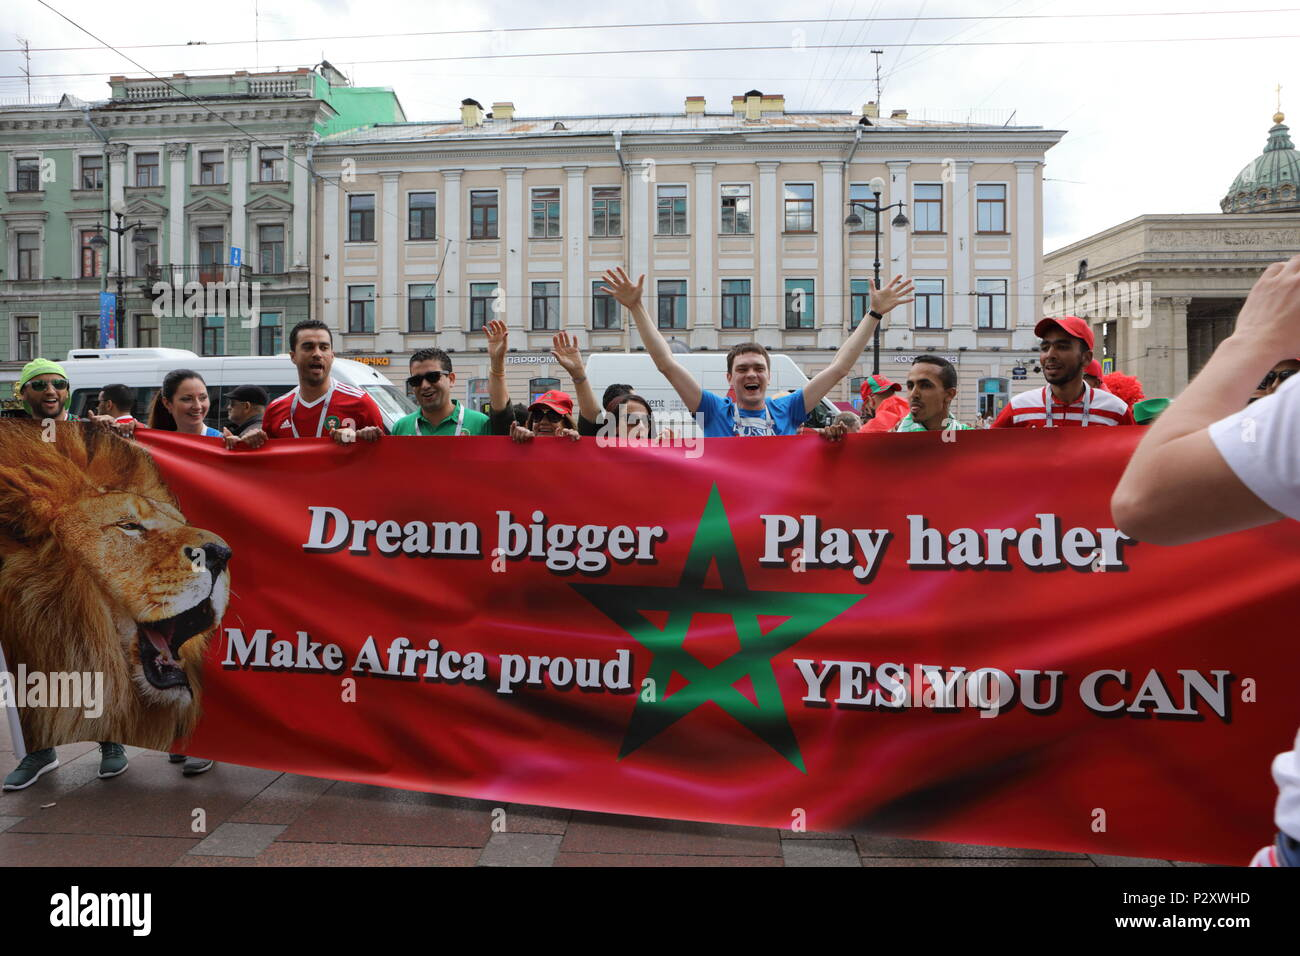 St. Petersburg, Russia - June 15, 2018: Moroccan football fans with a banner in Saint Petersburg on the day of first match of FIFA World Cup 2018 in t - Stock Image